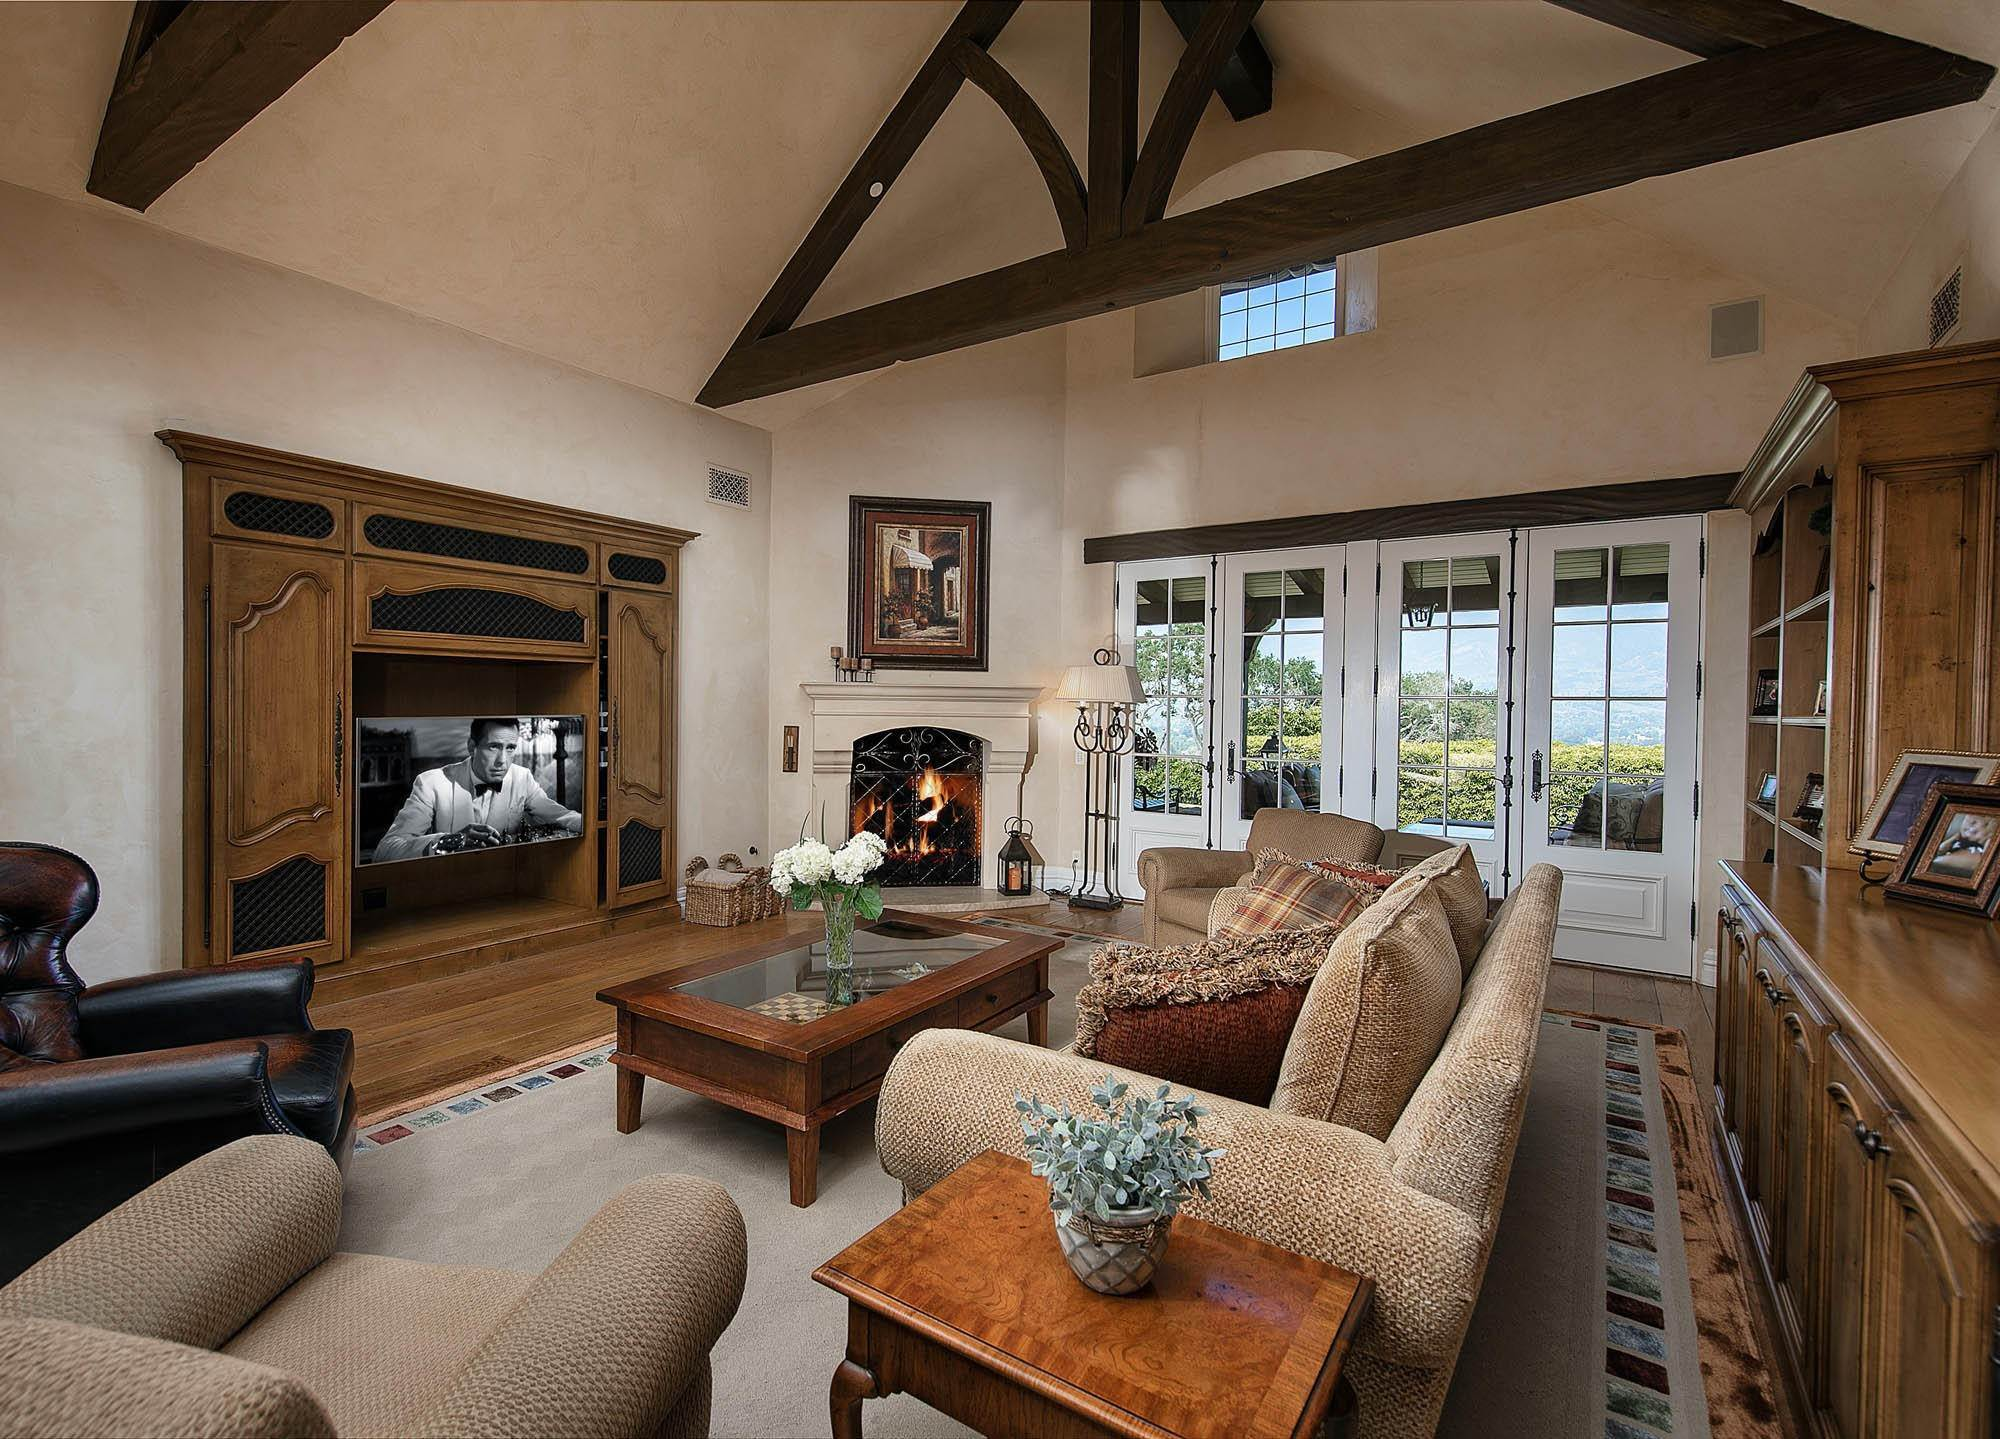 6. Estate for Sale at 4180 Cresta Avenue Santa Barbara, California 93110 United States